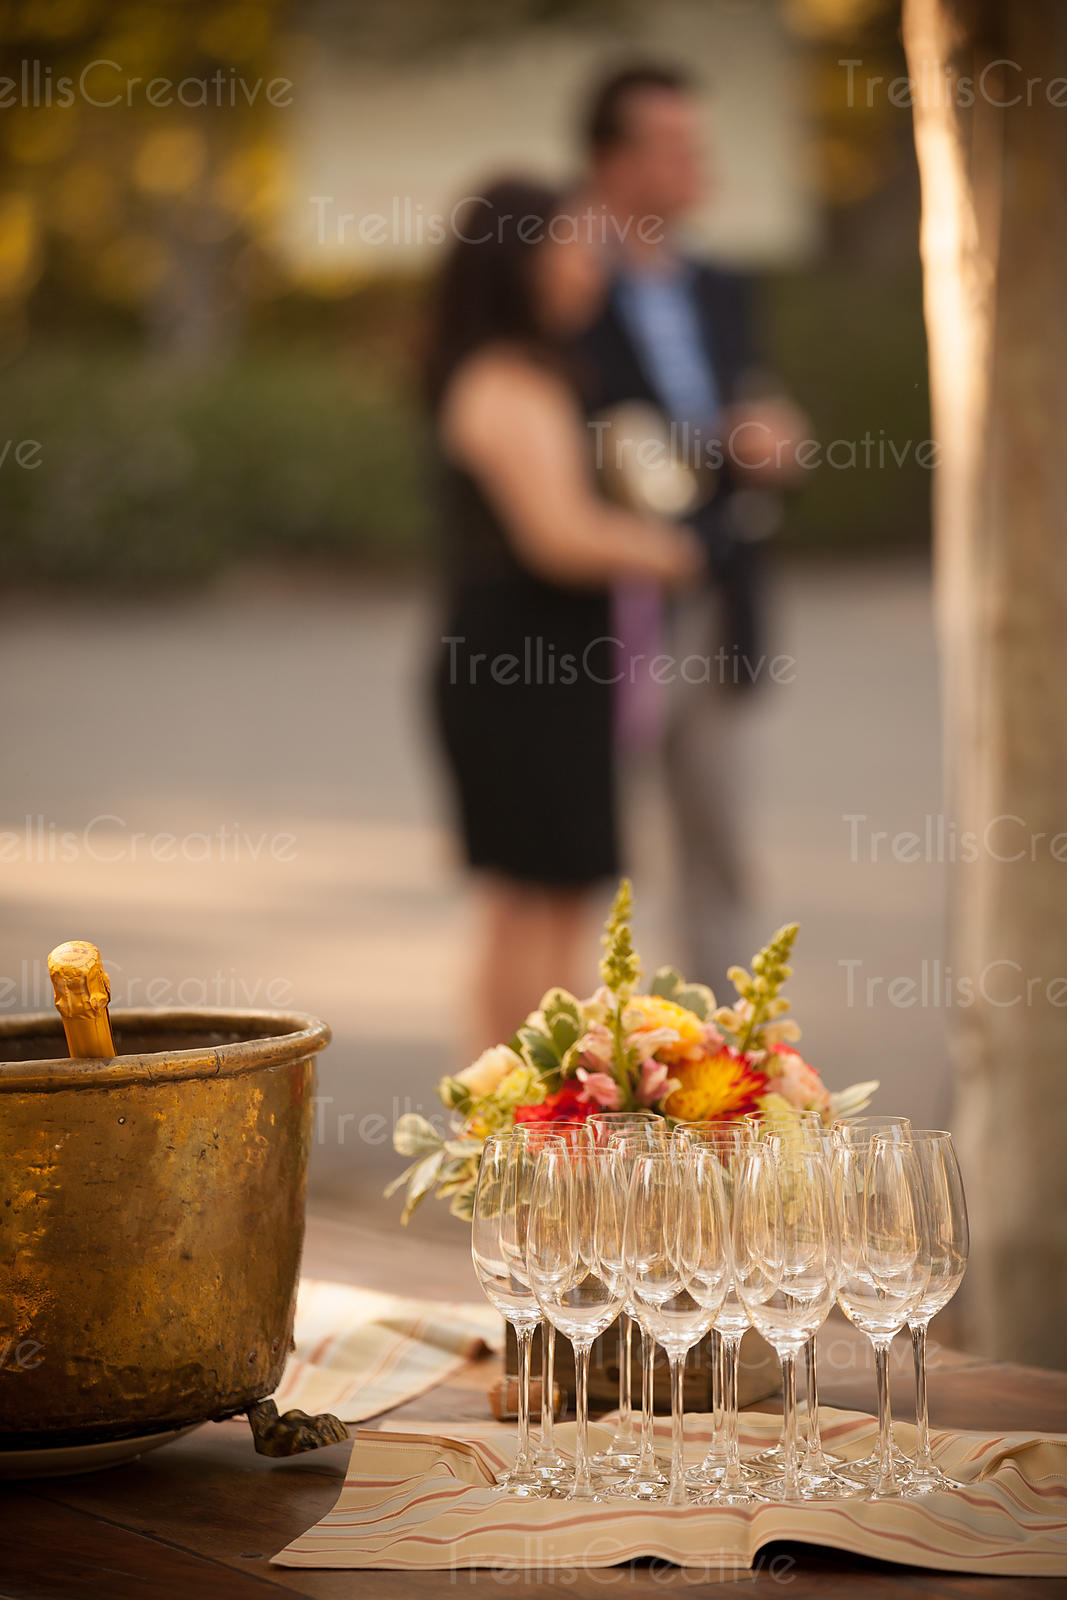 Table at a party with chilled champagne and sparkling wine glasses with people in background